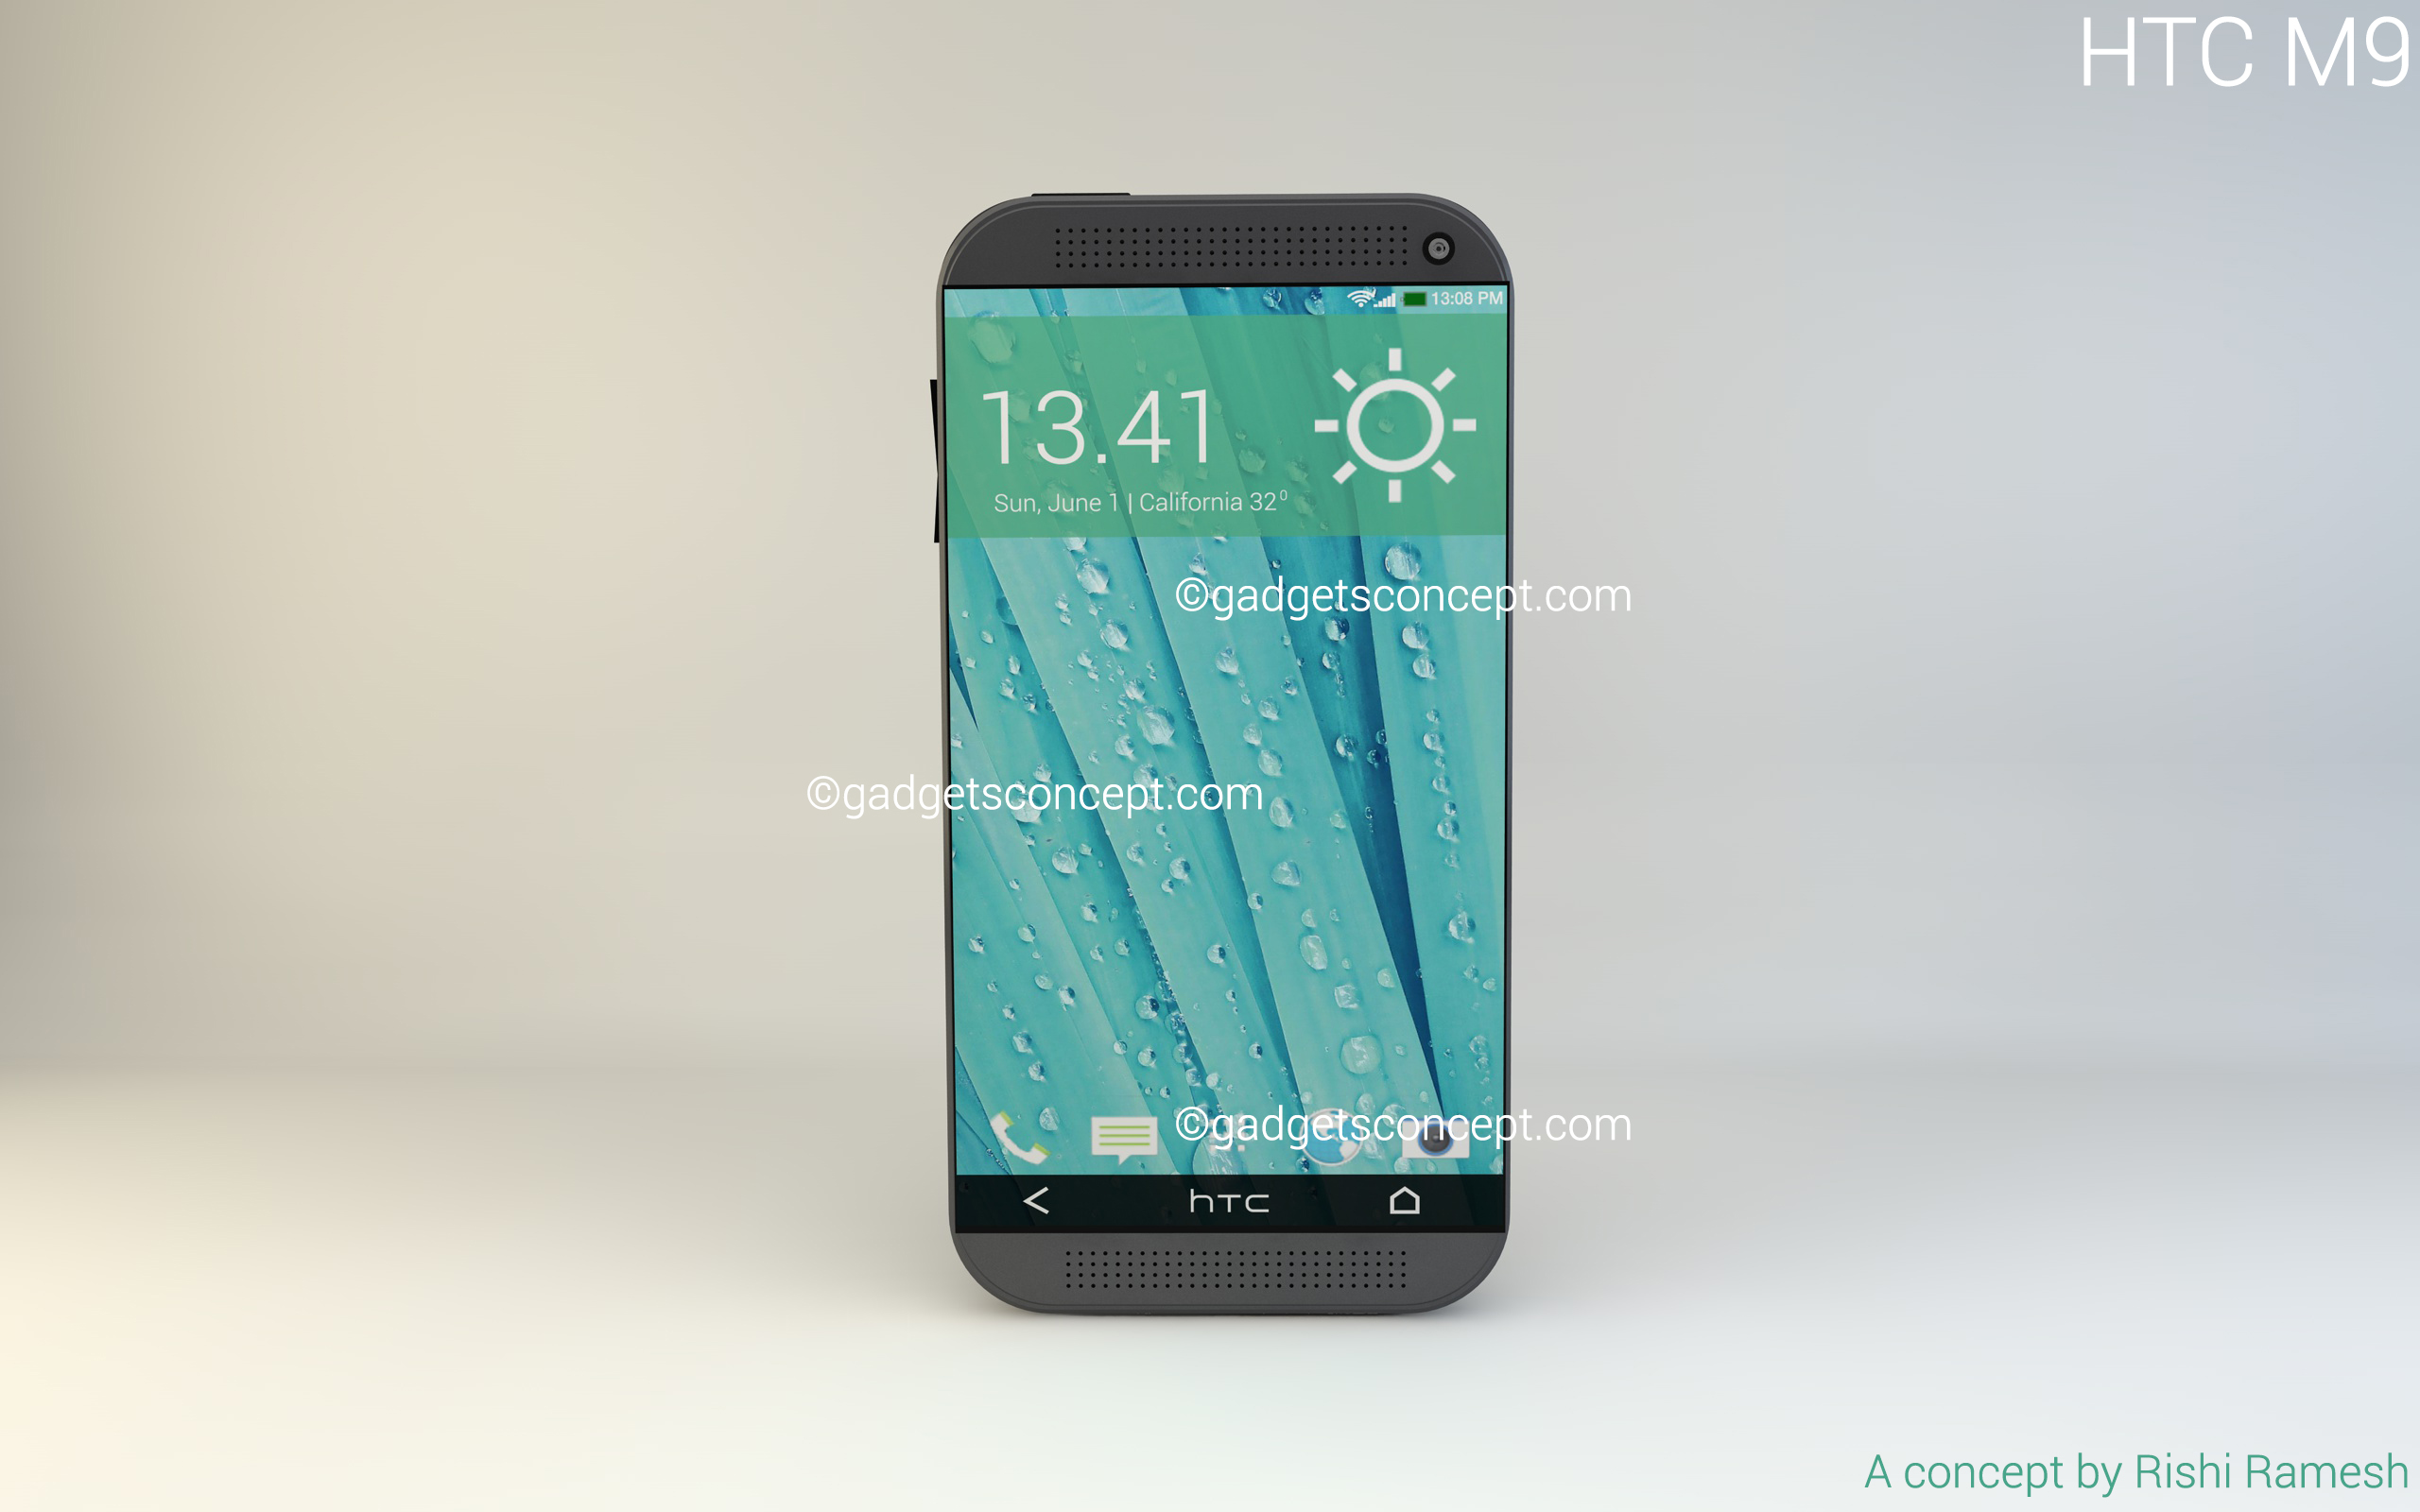 1-htc-one-m9-concept-by-rishi-ramesh-1402135275873.jpg